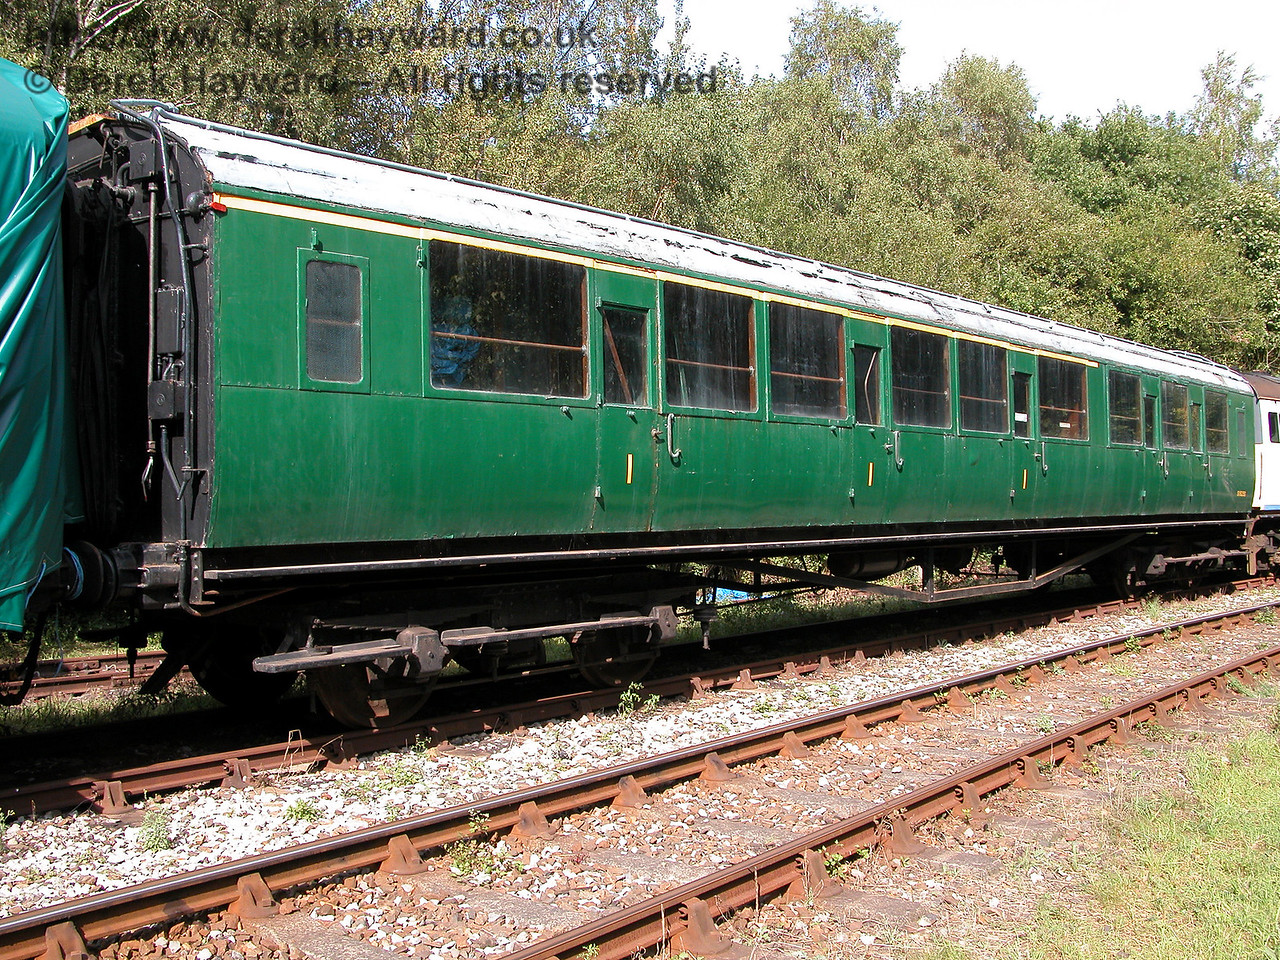 4-COR unit 3142, Trailer Composite 11825, stored at Shepherdswell on 19.09.2006.  During a visit in 2015 this coach had also been covered by a tarpaulin, and was therefore not photographed.